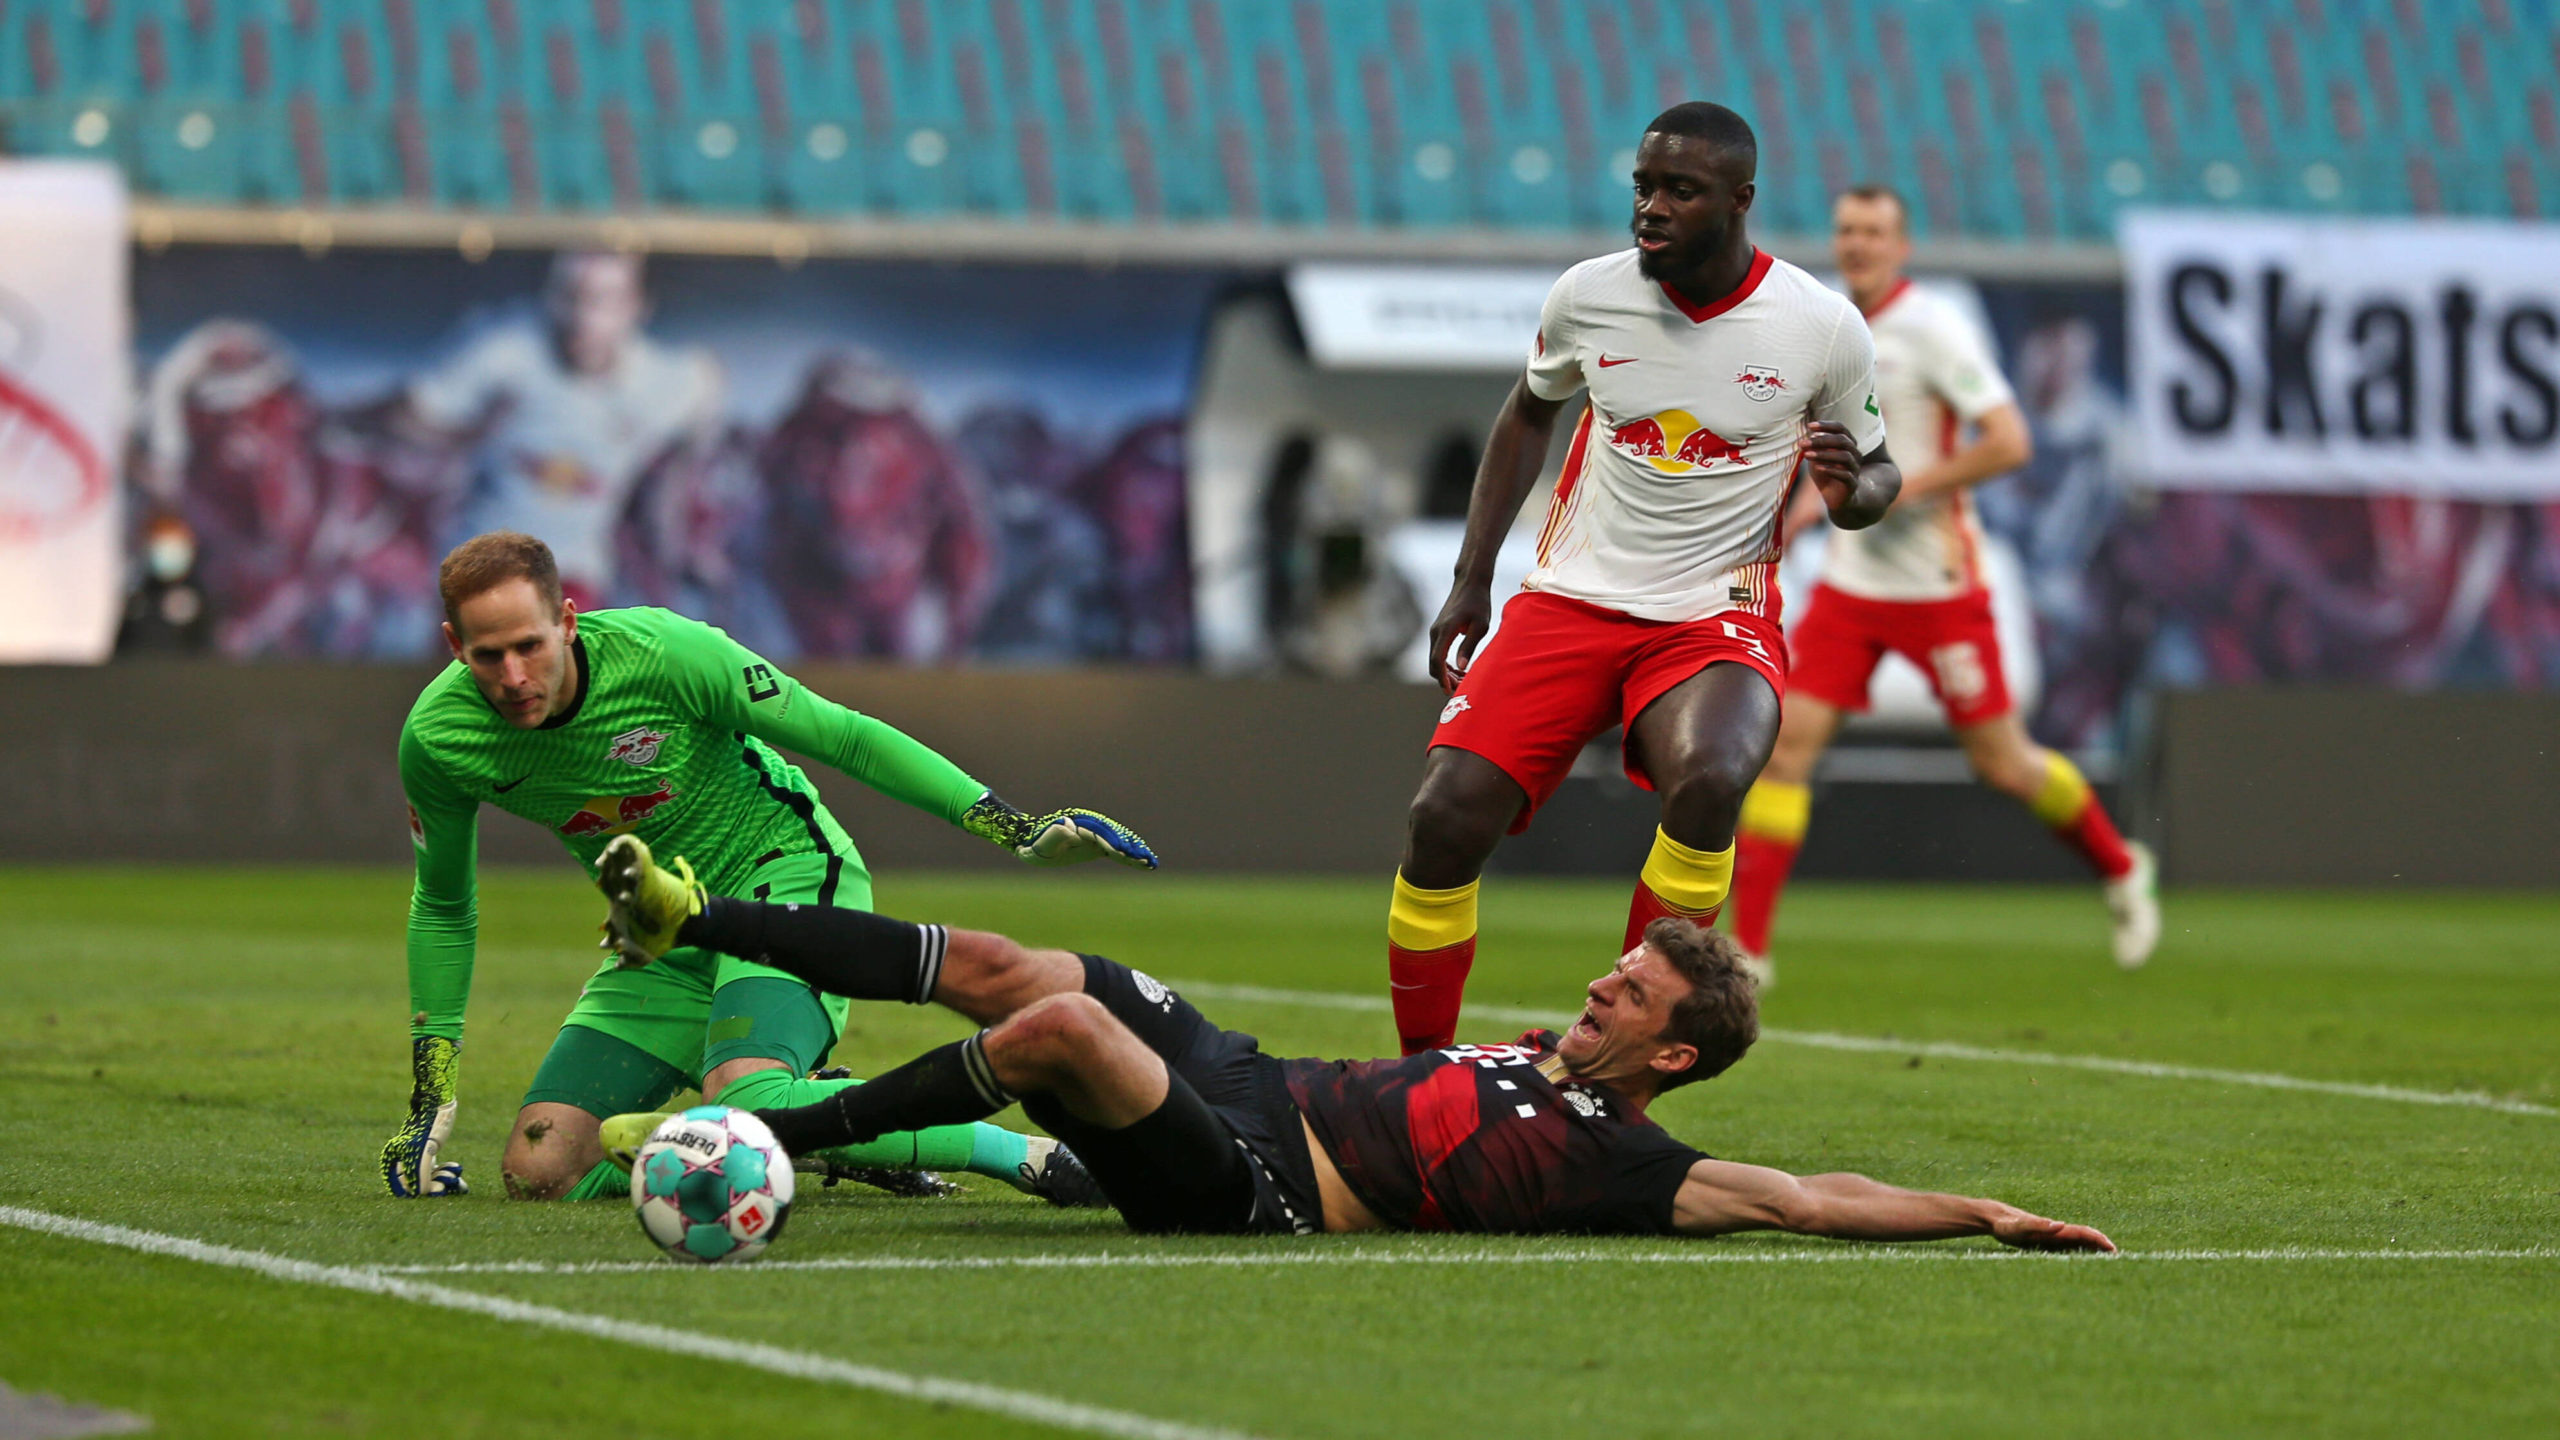 03.04.2021, Fussball 1. Bundesliga 2020/2021, 27. Spieltag, RB Leipzig - FC Bayern München, in der Red Bull Arena Leipzig. v.li: Torwart Peter Gulacsi RB Leipzig, Thomas Müller FC Bayern München gegen Dayot Upamecano RB Leipzig ***DFL and DFB regulations prohibit any use of photographs as image sequences and/or quasi-video.*** *** 03 04 2021, Football 1 Bundesliga 2020 2021, 27 Matchday, RB Leipzig FC Bayern Munich, at Red Bull Arena Leipzig from left goalkeeper Peter Gulacsi RB Leipzig , Thomas Müller FC Bayern Munich vs Dayot Upamecano RB Leipzig DFL and DFB regulations prohibit any use of photographs as image sequences and or quasi video